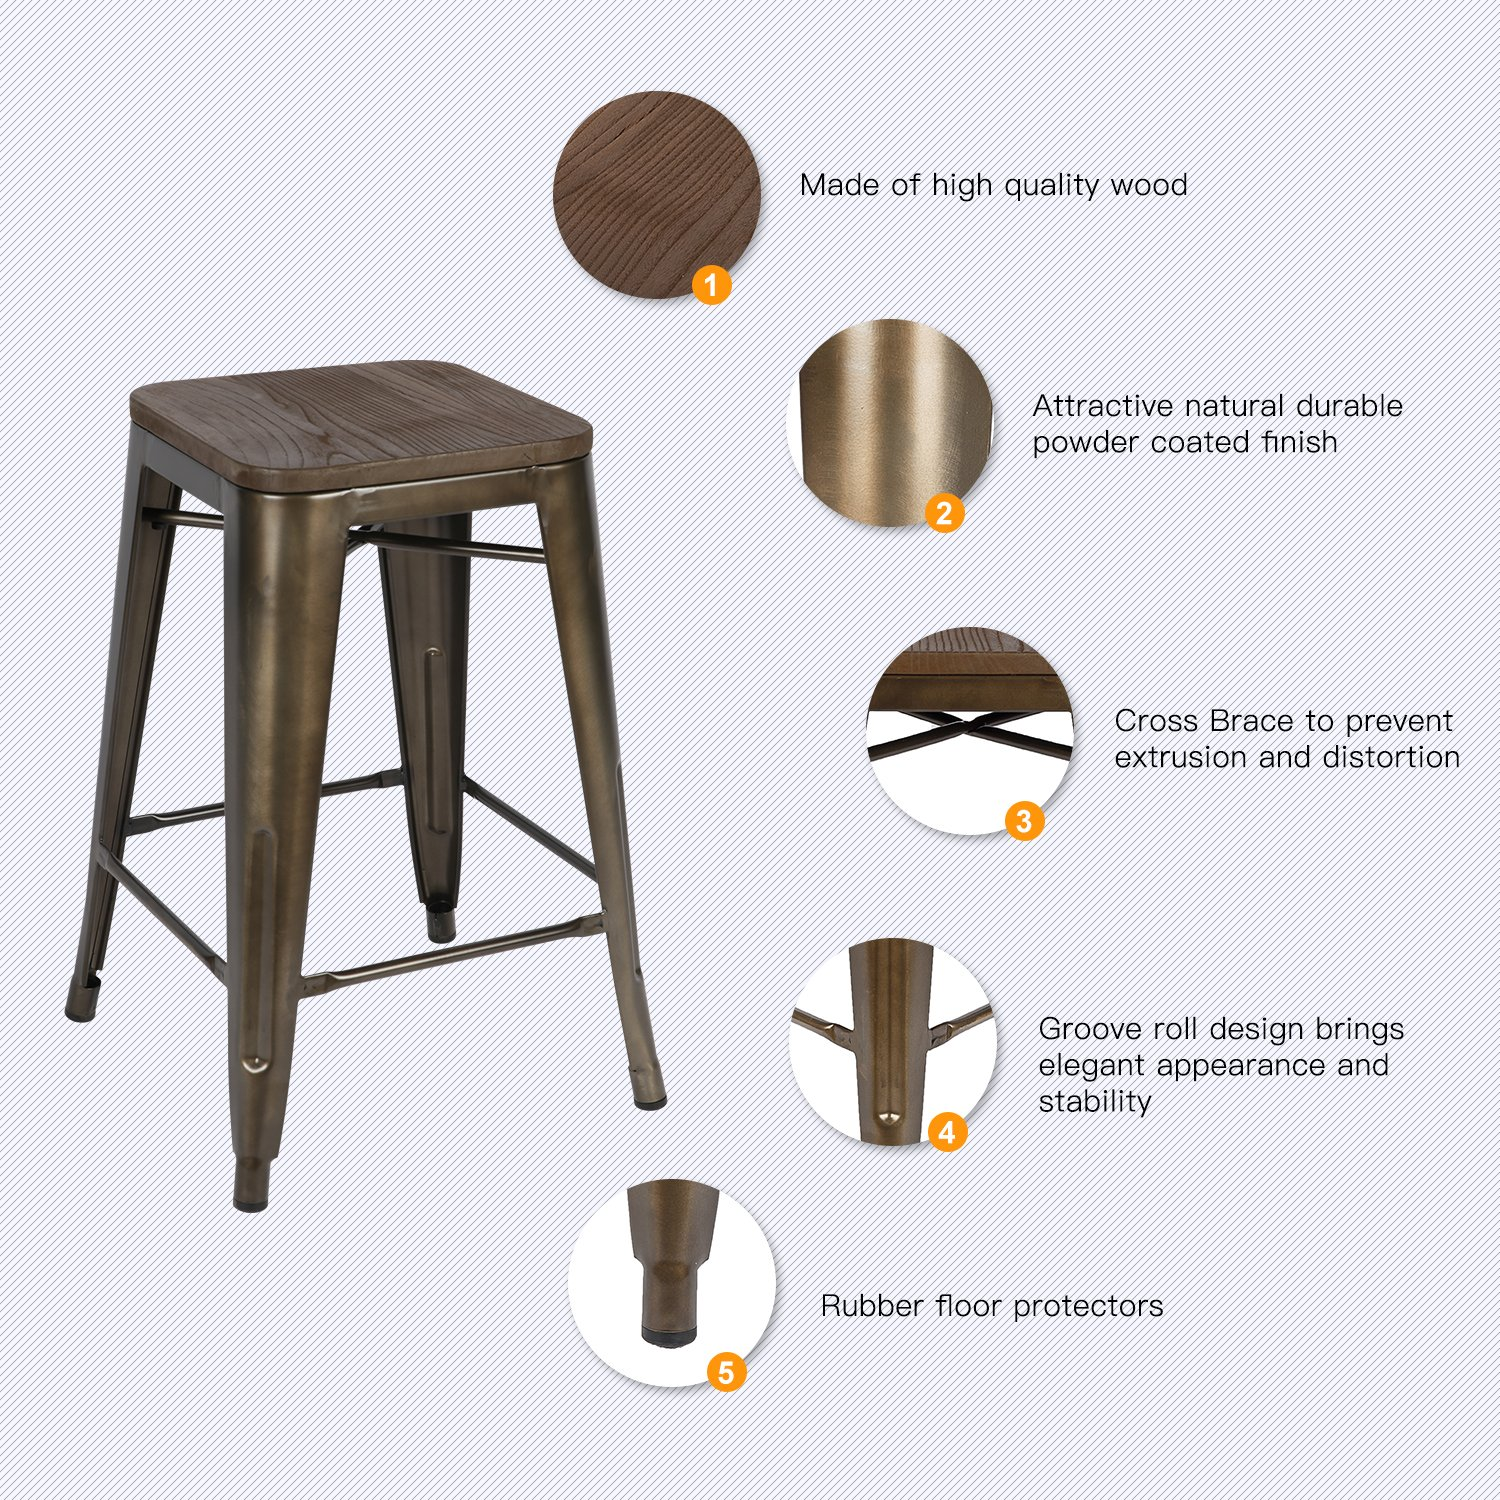 LCH 24 Inch Patio Metal Industrial Bar Stools, Set of 4 Indoor/Outdoor Counter Stackable Barstool with Wood Seat, 500 LB Limit, Antique Copper by LCH (Image #2)